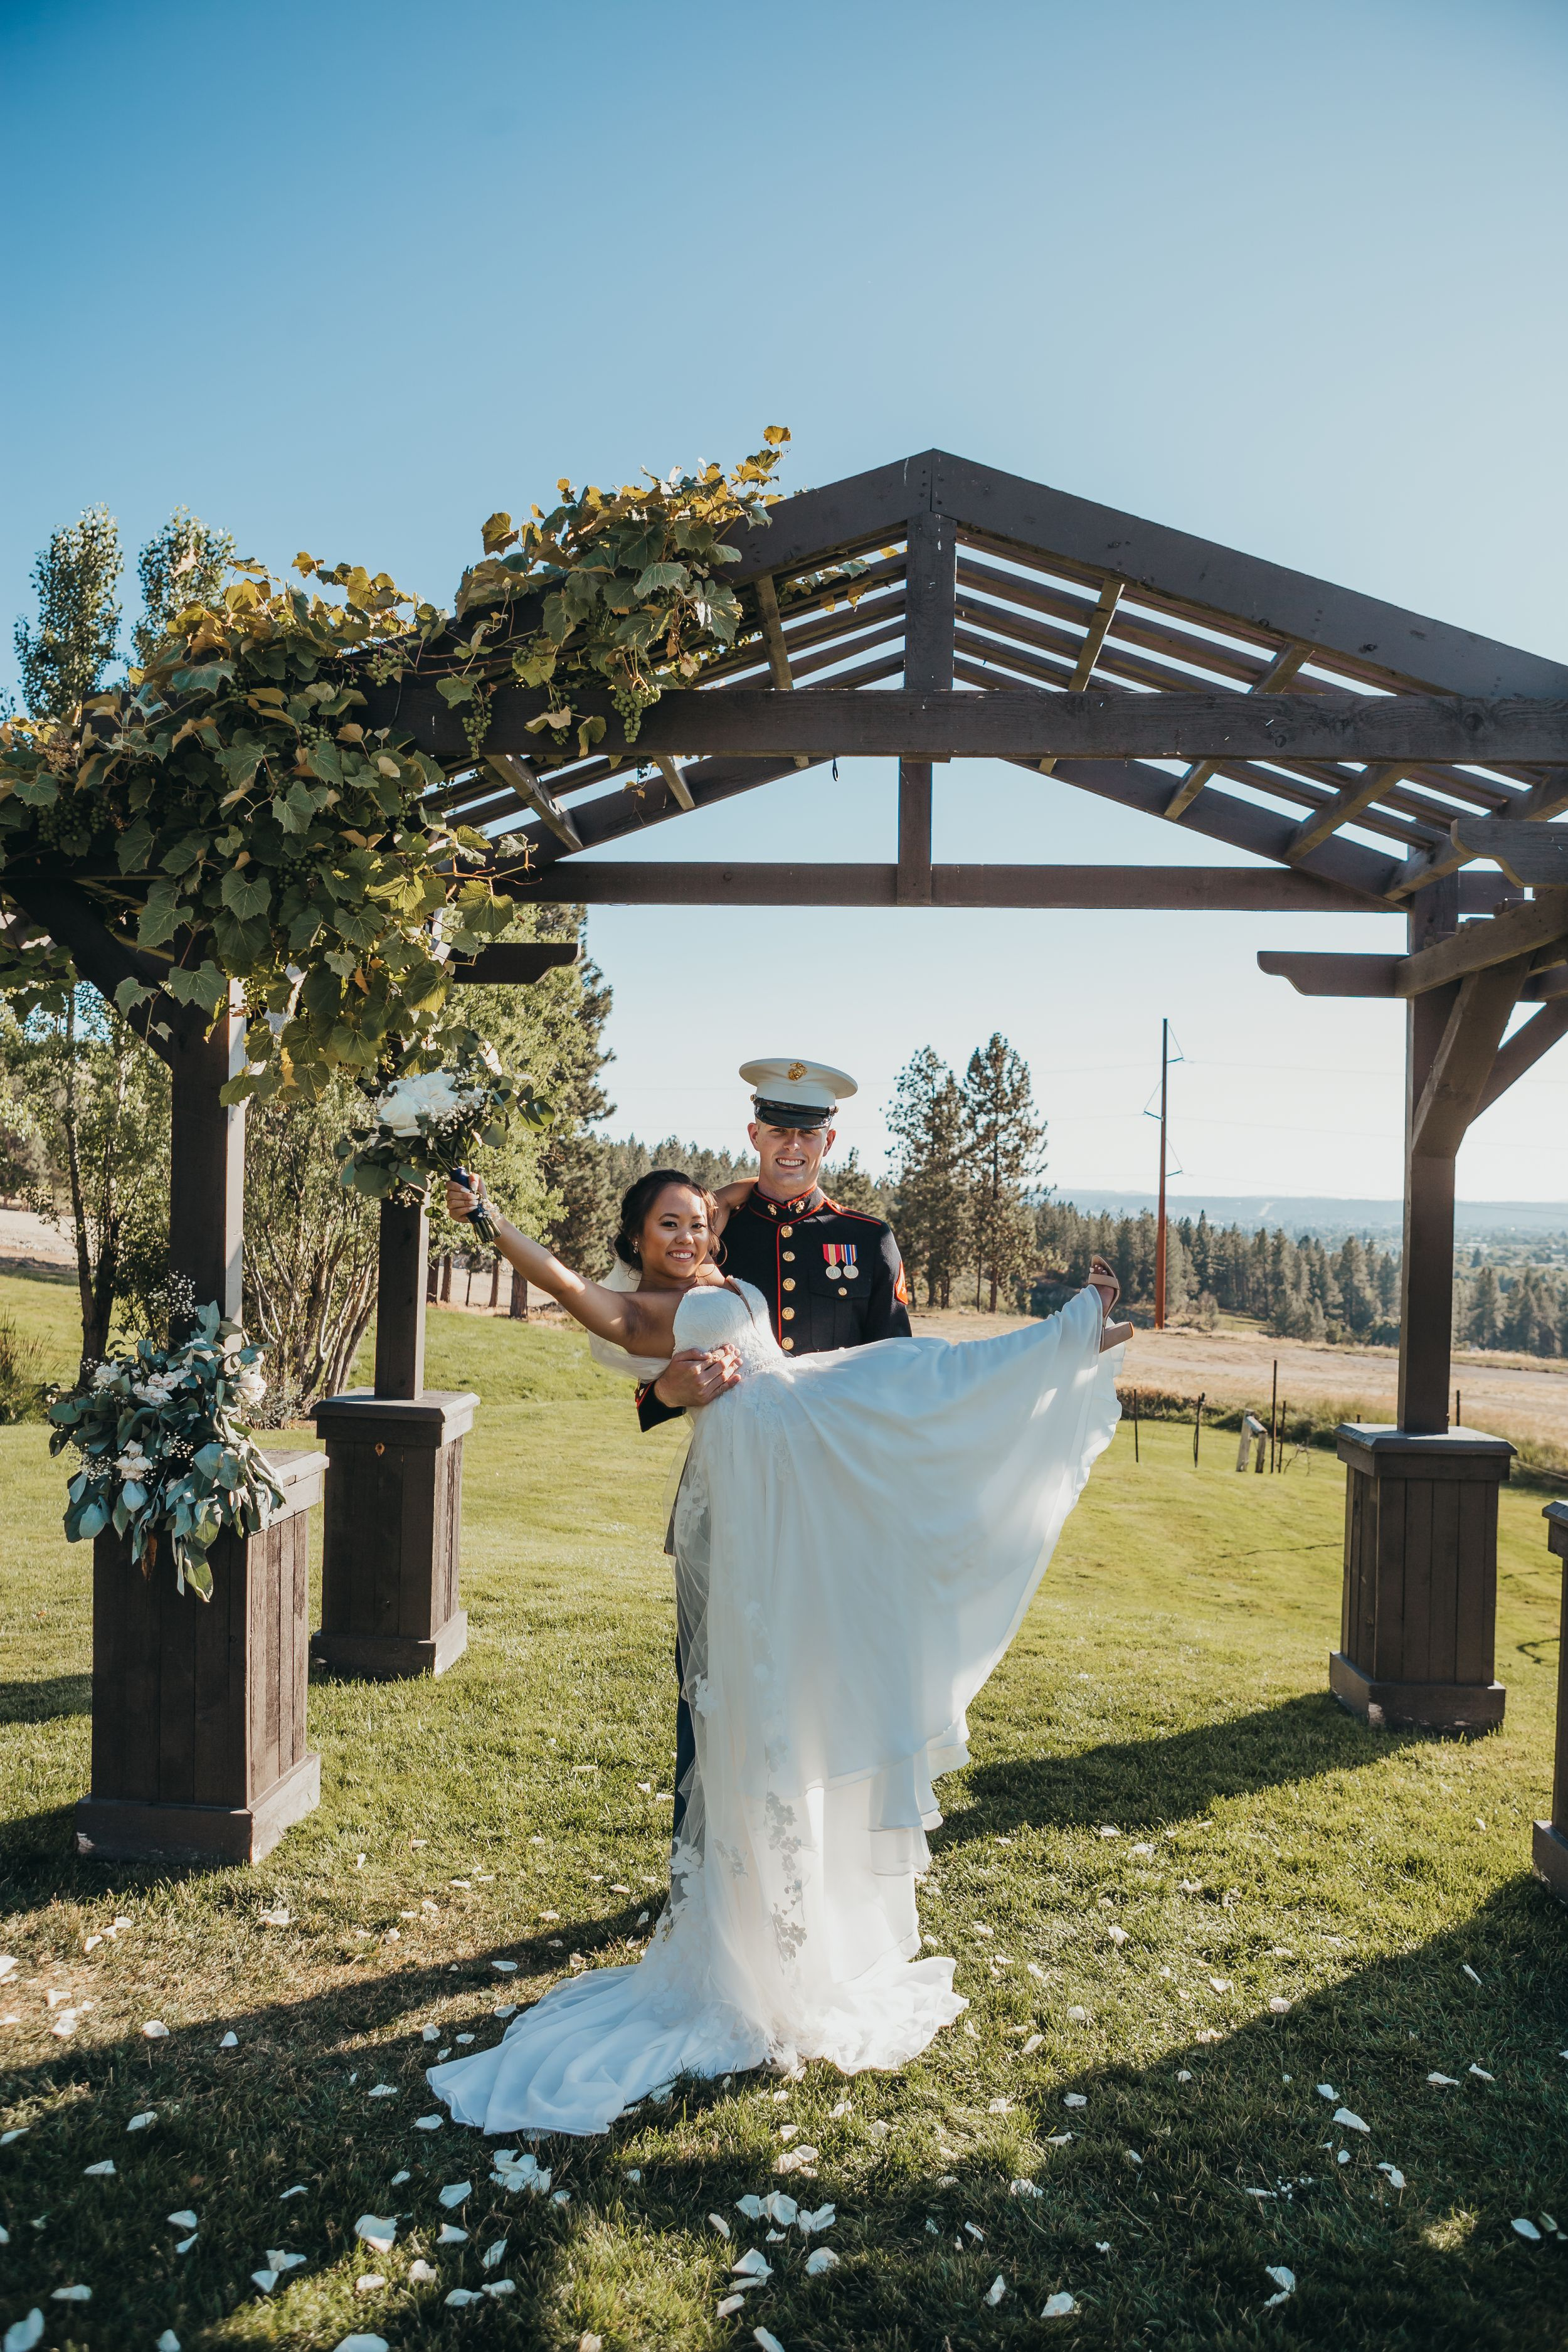 Beacon hill events wedding arch bride and groom Soulful hues photography